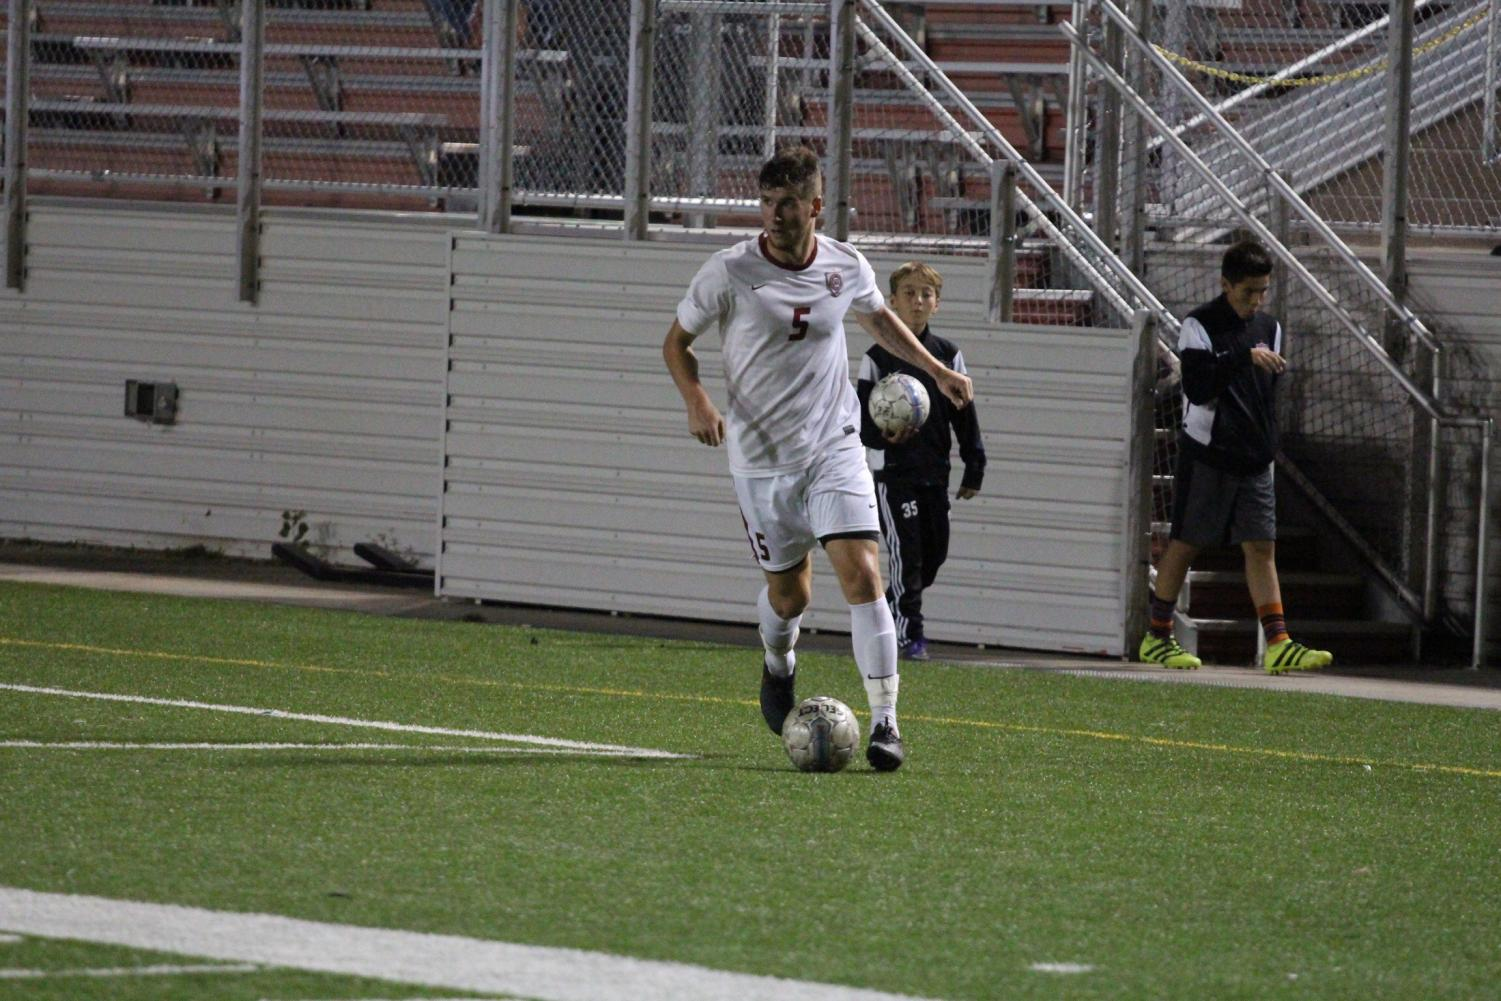 British born, Joshua Horne, plays in a game while in college. Horne will lead the boys soccer program when the practice begins in January.